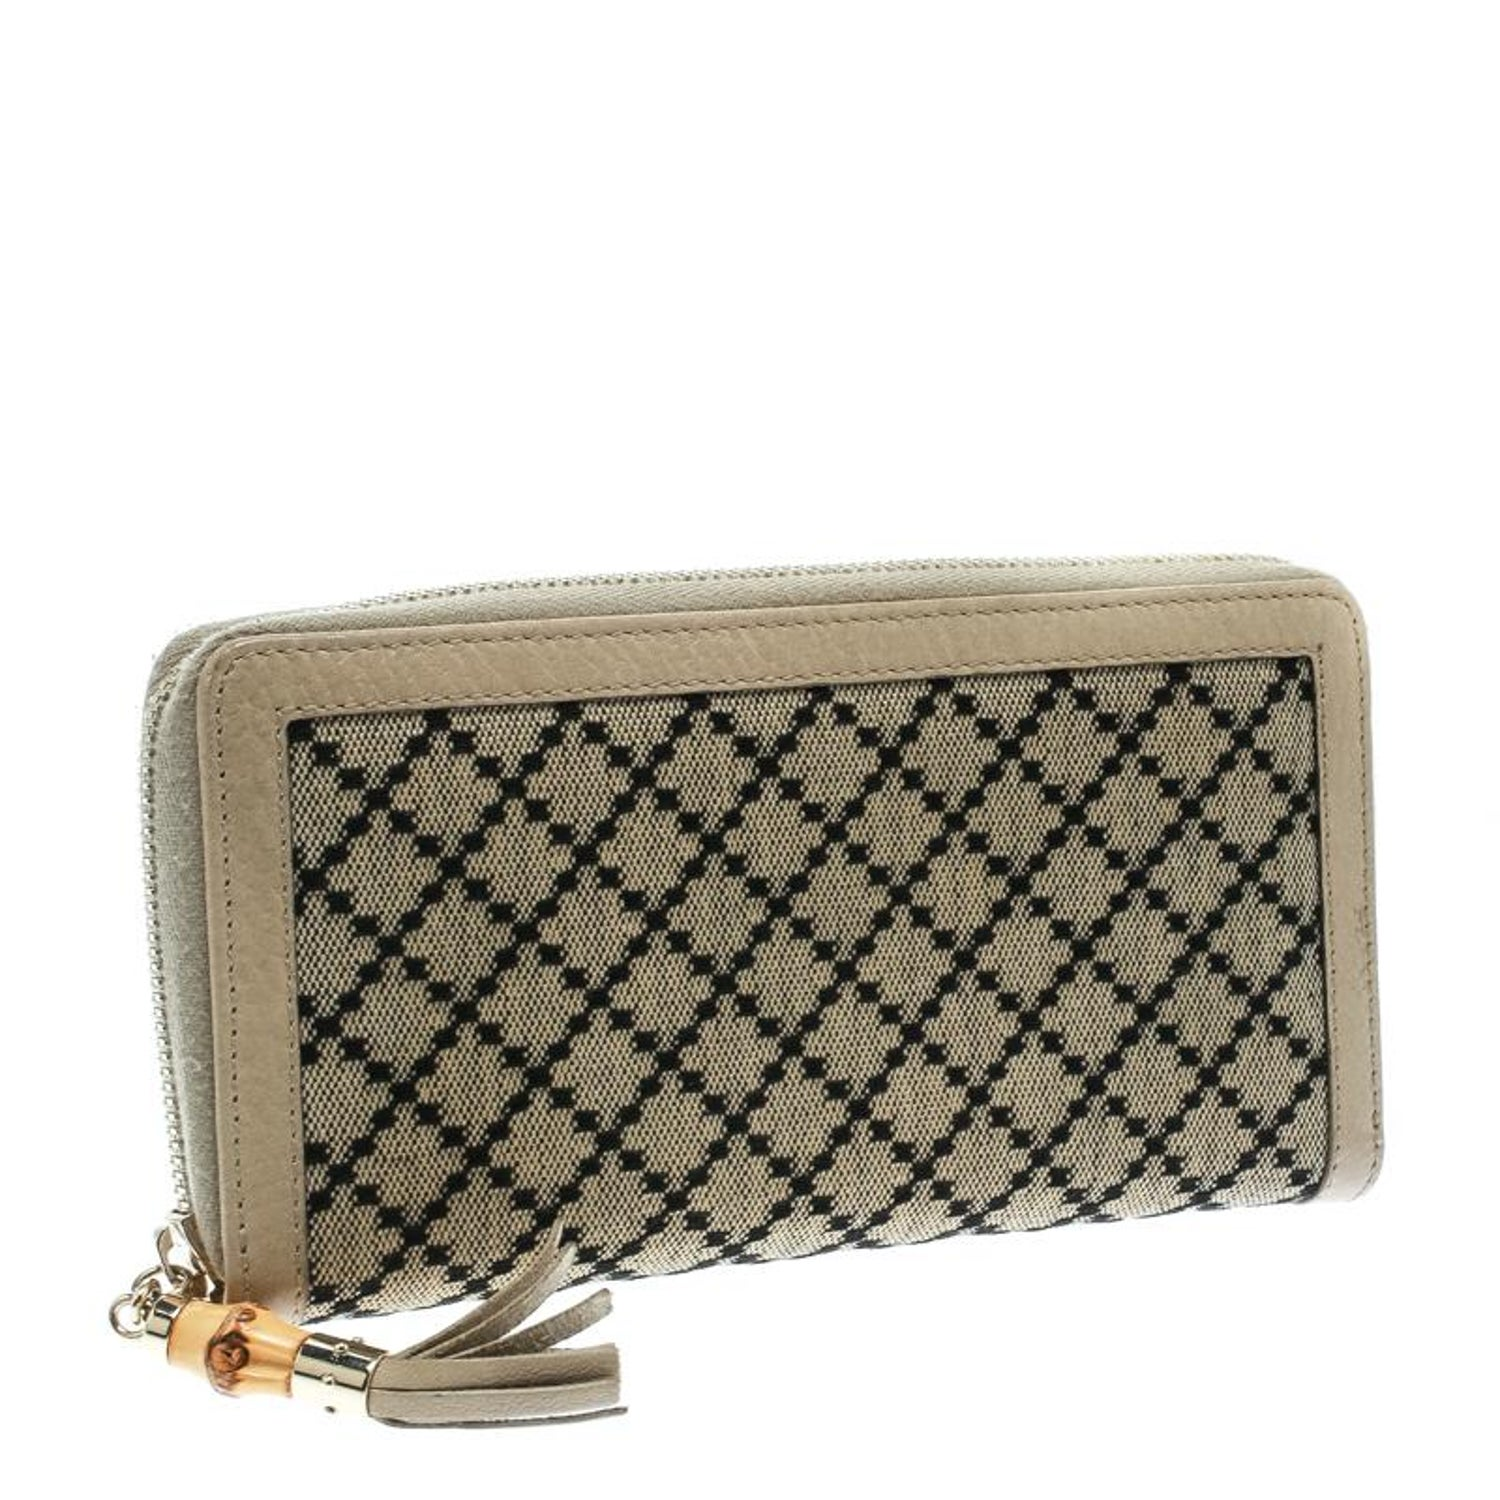 4952b32b48e1 Gucci Beige Diamante Canvas and Leather Bamboo Tassel Zip Around Wallet For  Sale at 1stdibs